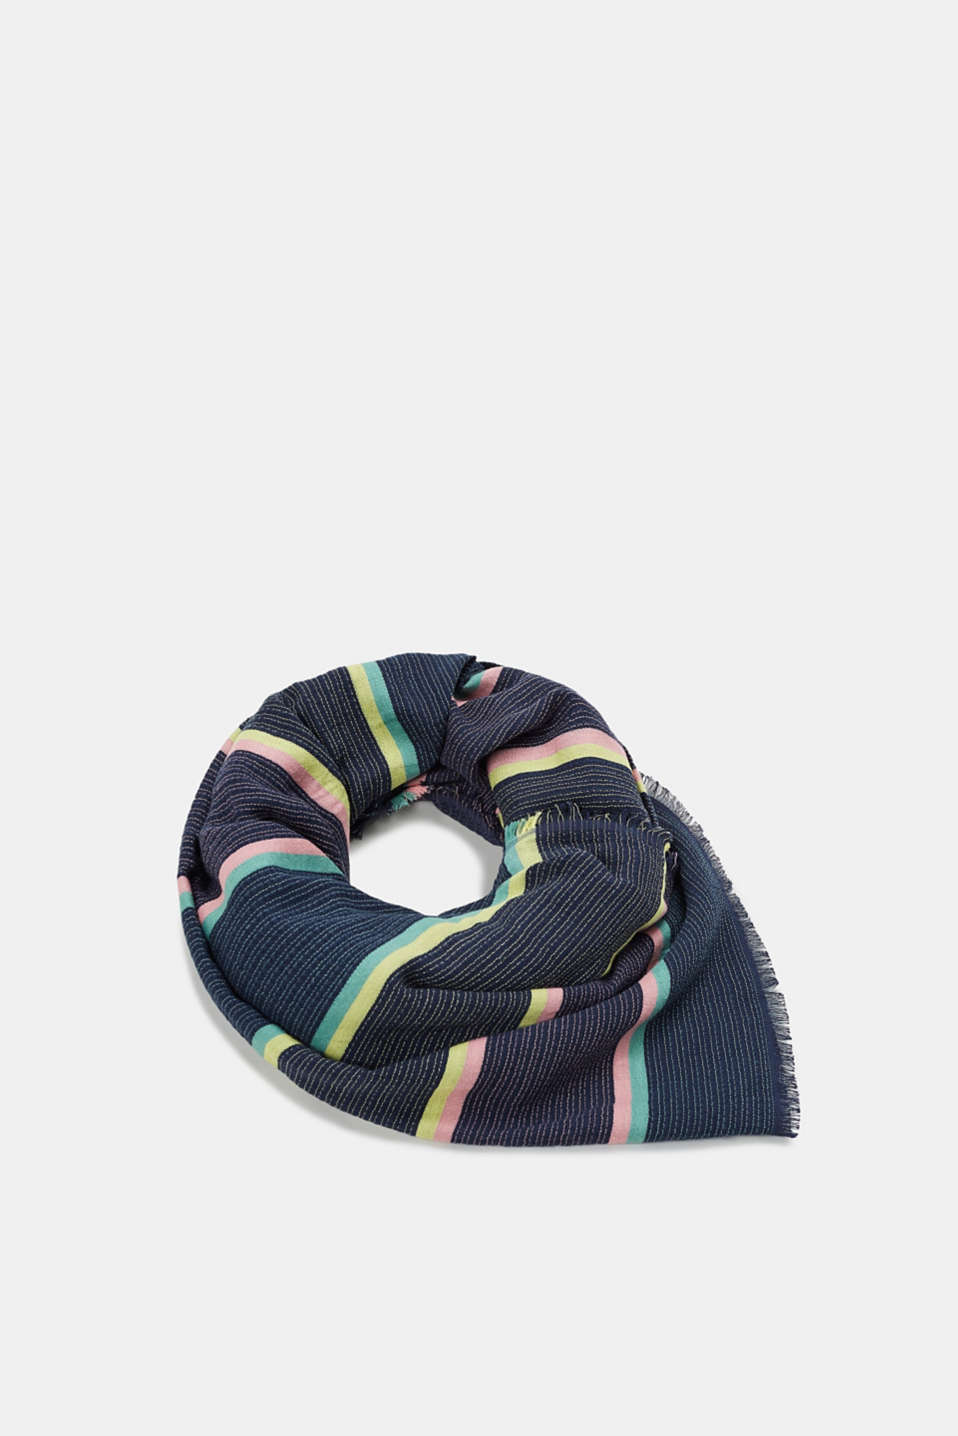 Esprit - Textured scarf with a fine striped pattern